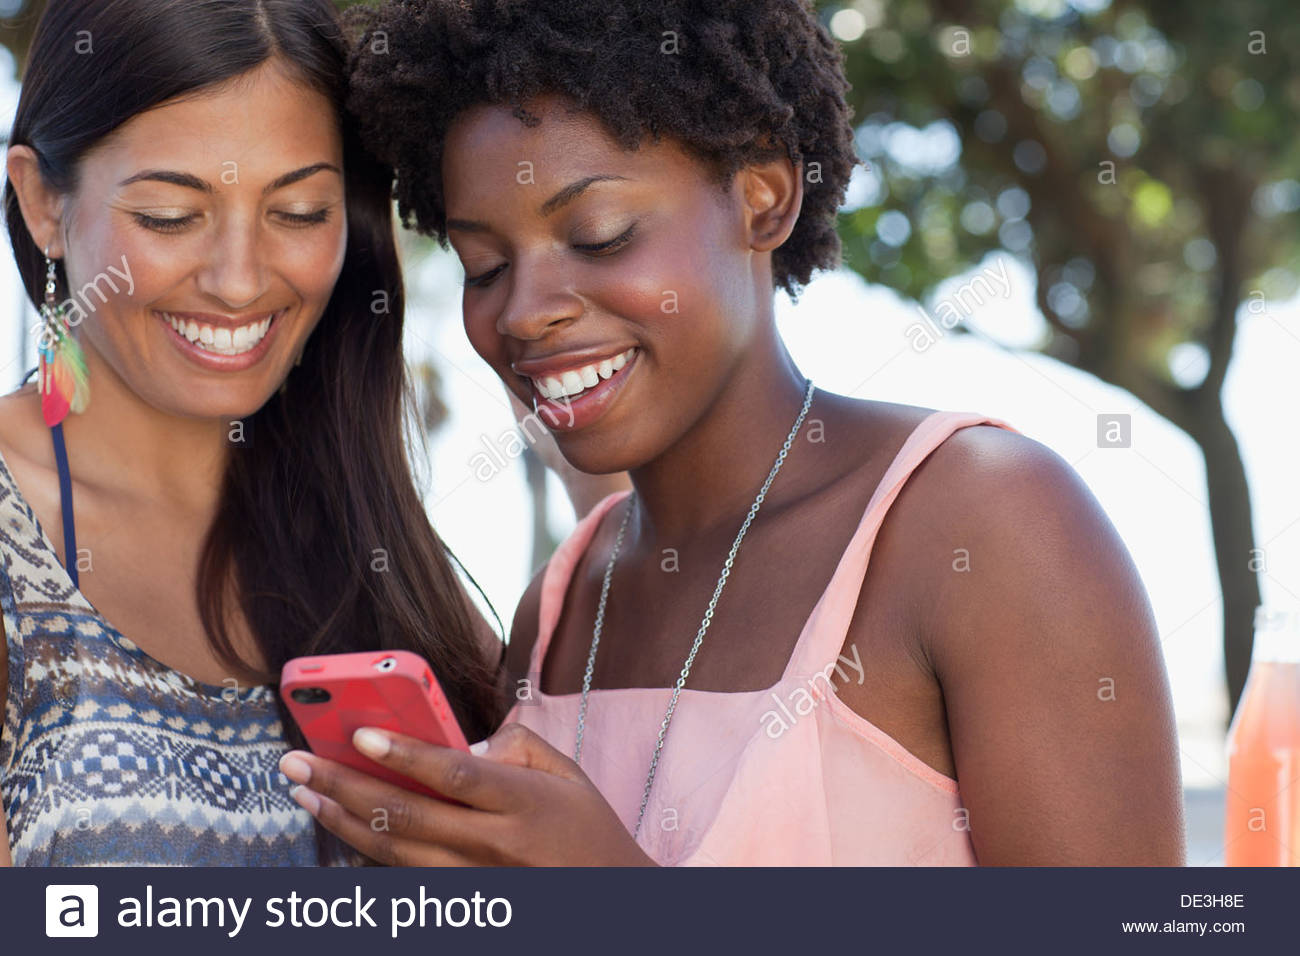 Women using cell phone together - Stock Image